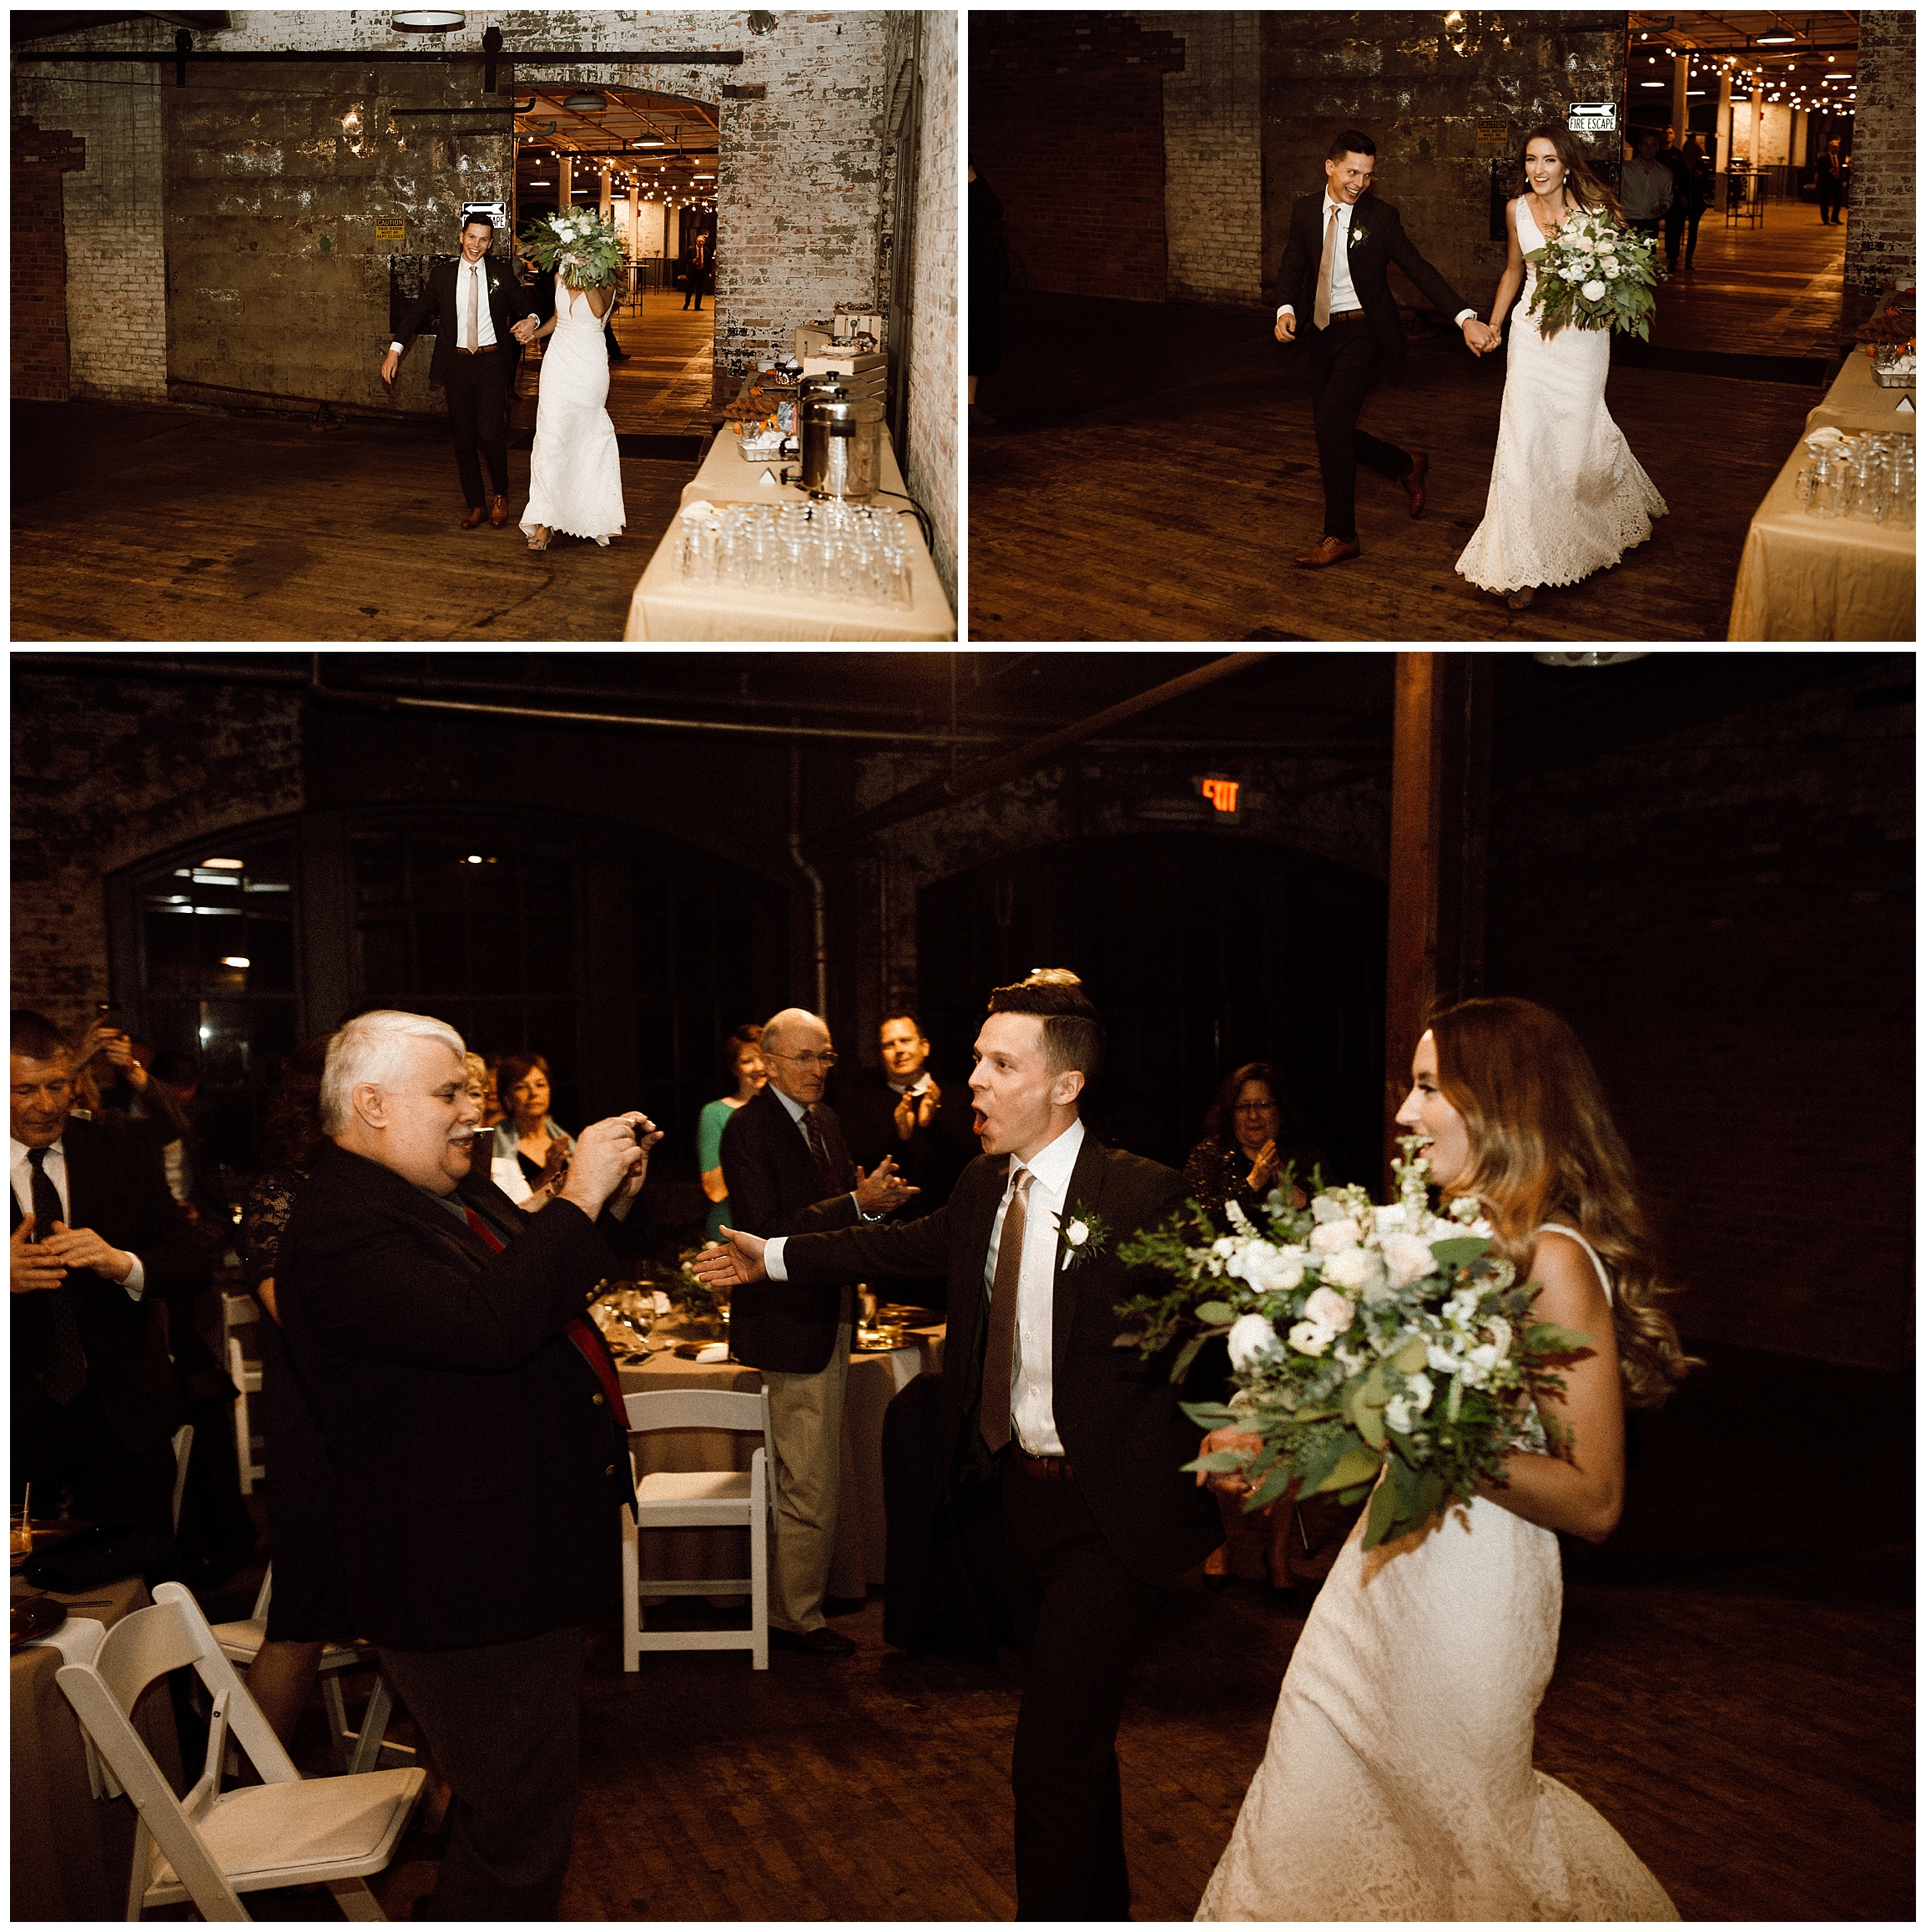 Katie_Vonasek_Photography_Ford_Piquette_Plant_Wedding_Detroit90.JPG